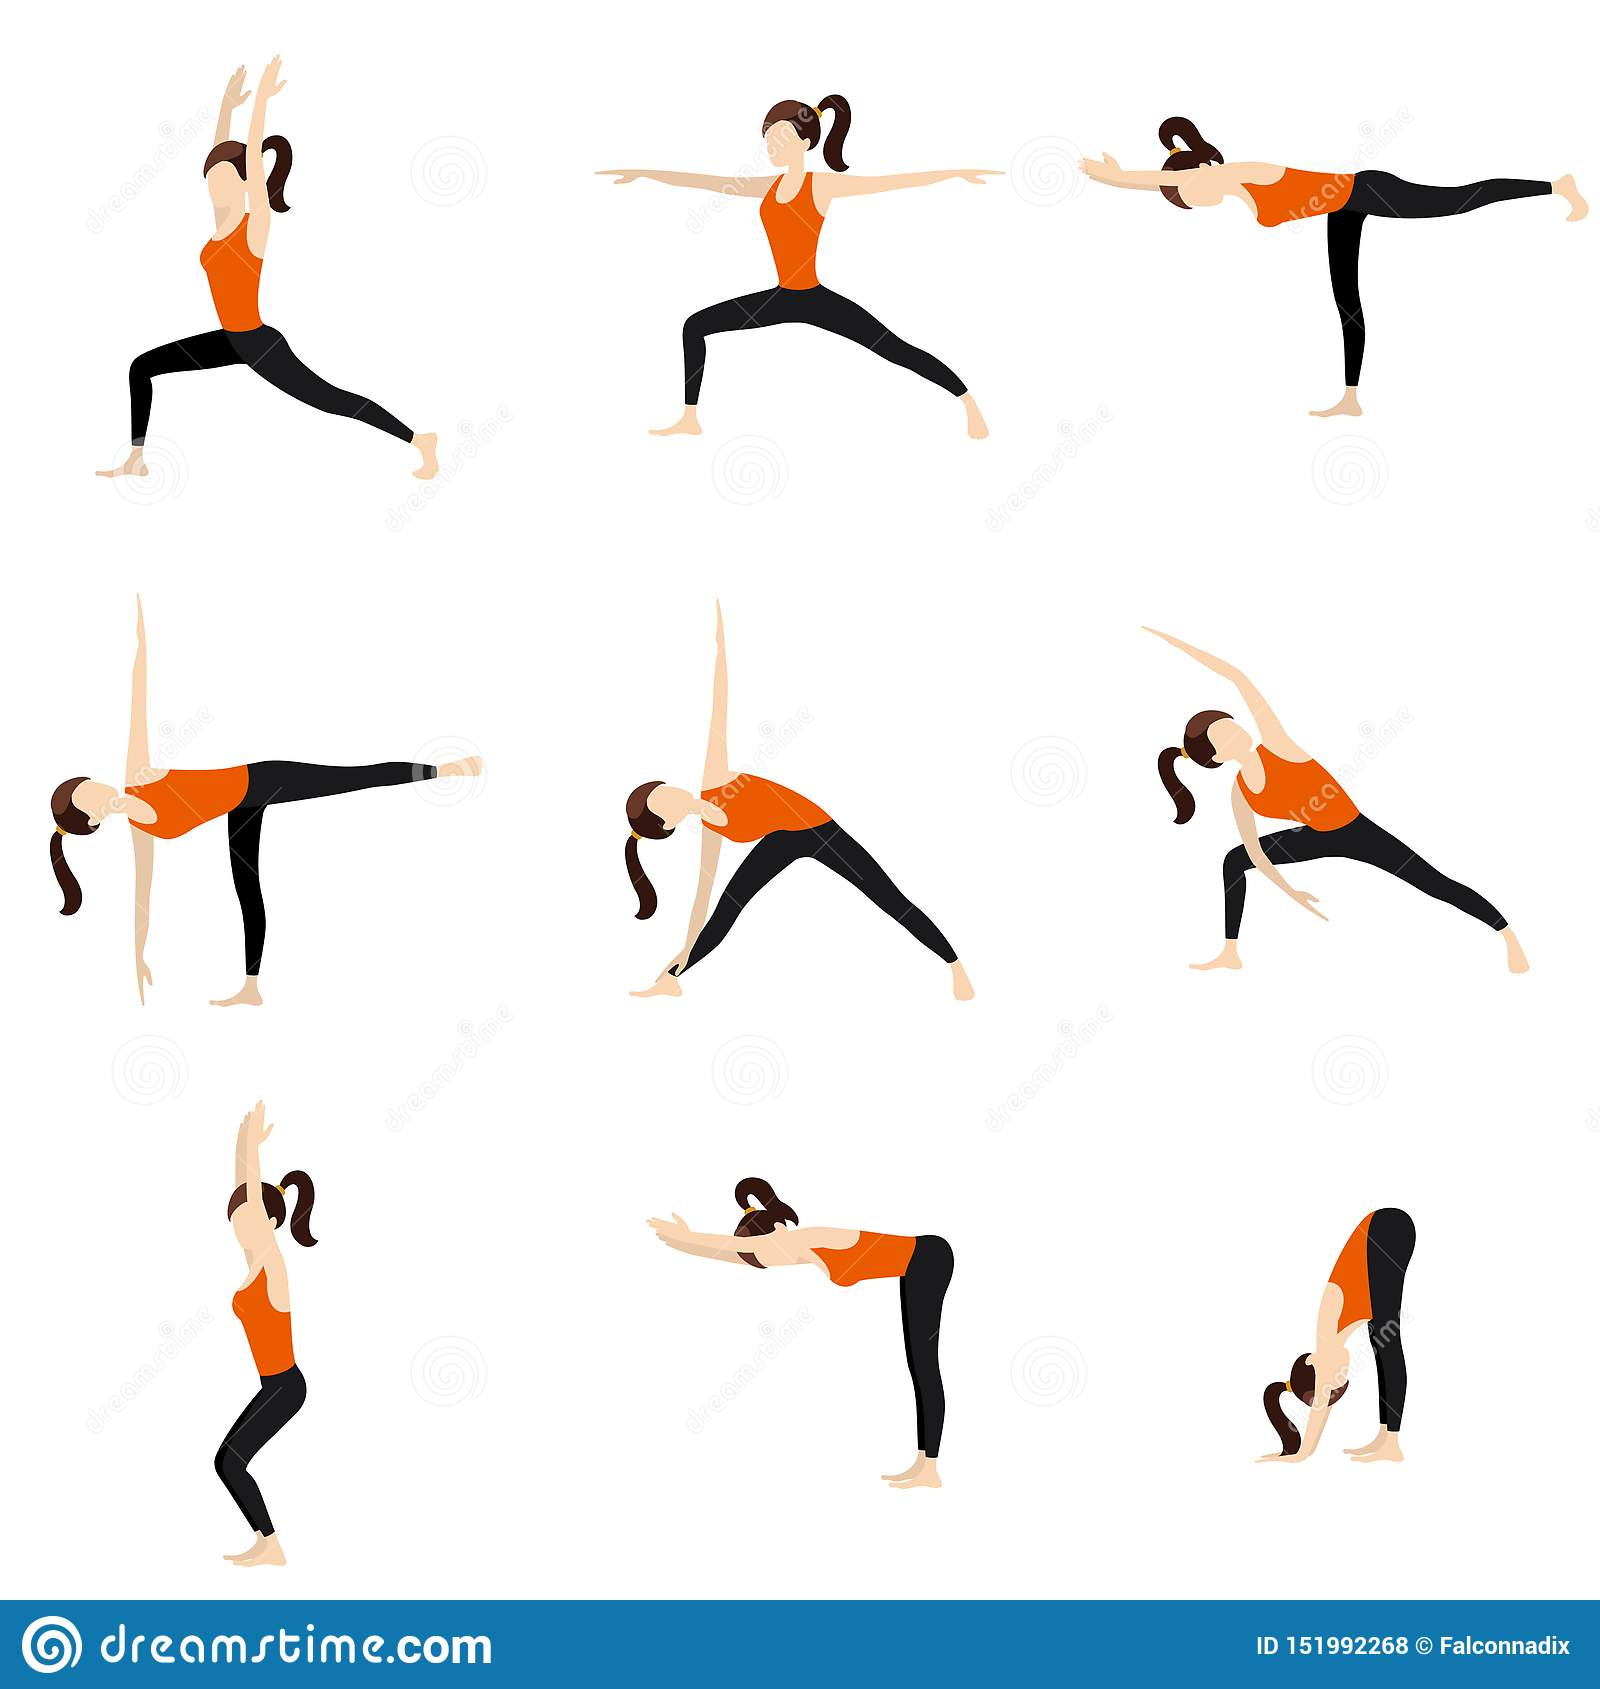 Standing Yoga Poses Set Stock Vector Illustration Of Moon 151992268